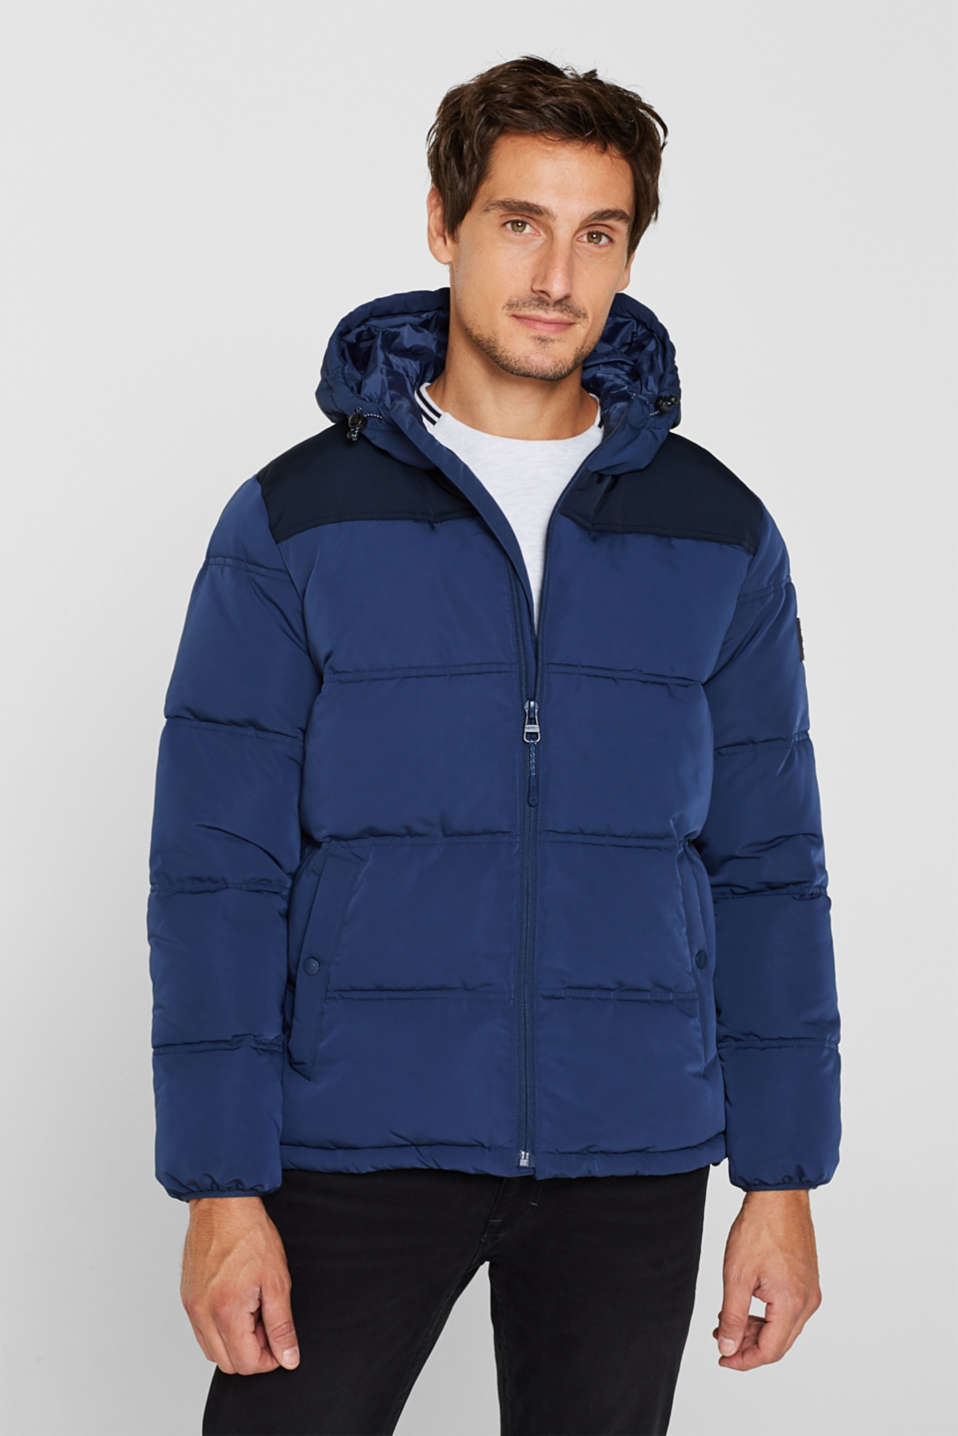 Jackets outdoor woven, BLUE, detail image number 0